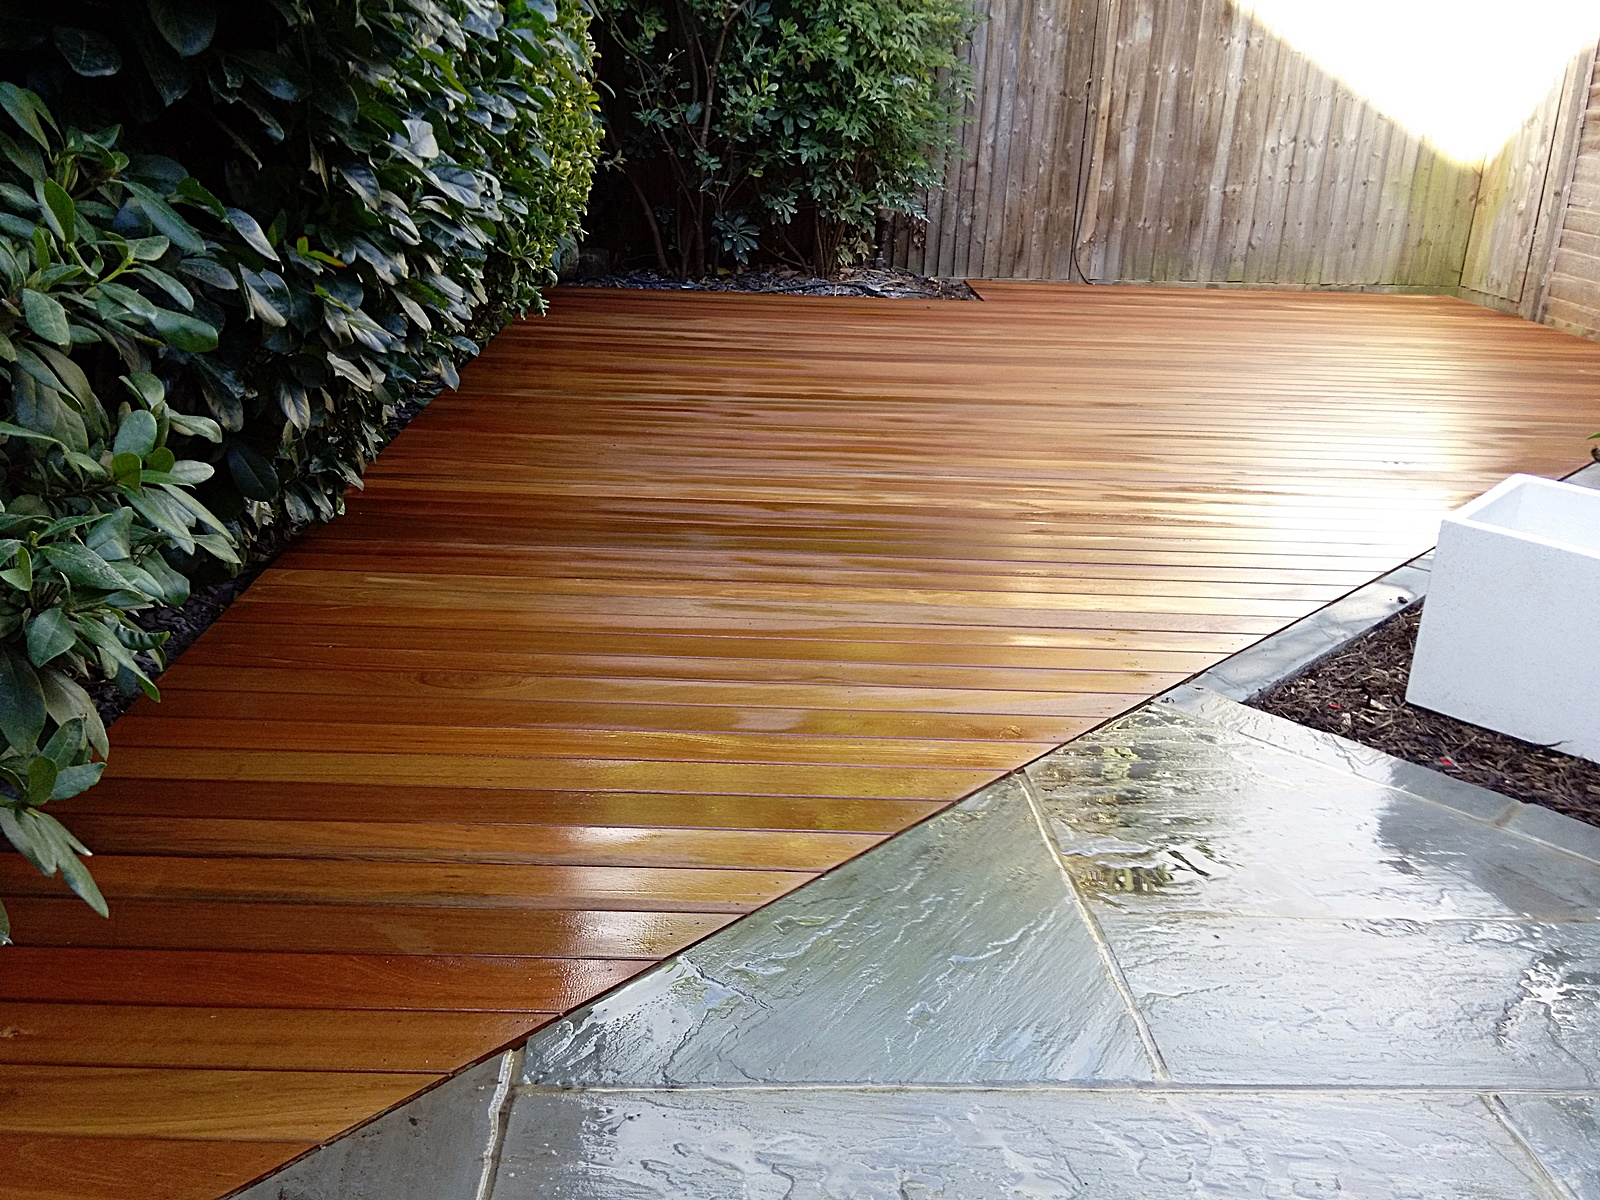 slate-paving-garden-design-modern-hardwood-decking-london-fulham-chelsea-kensington